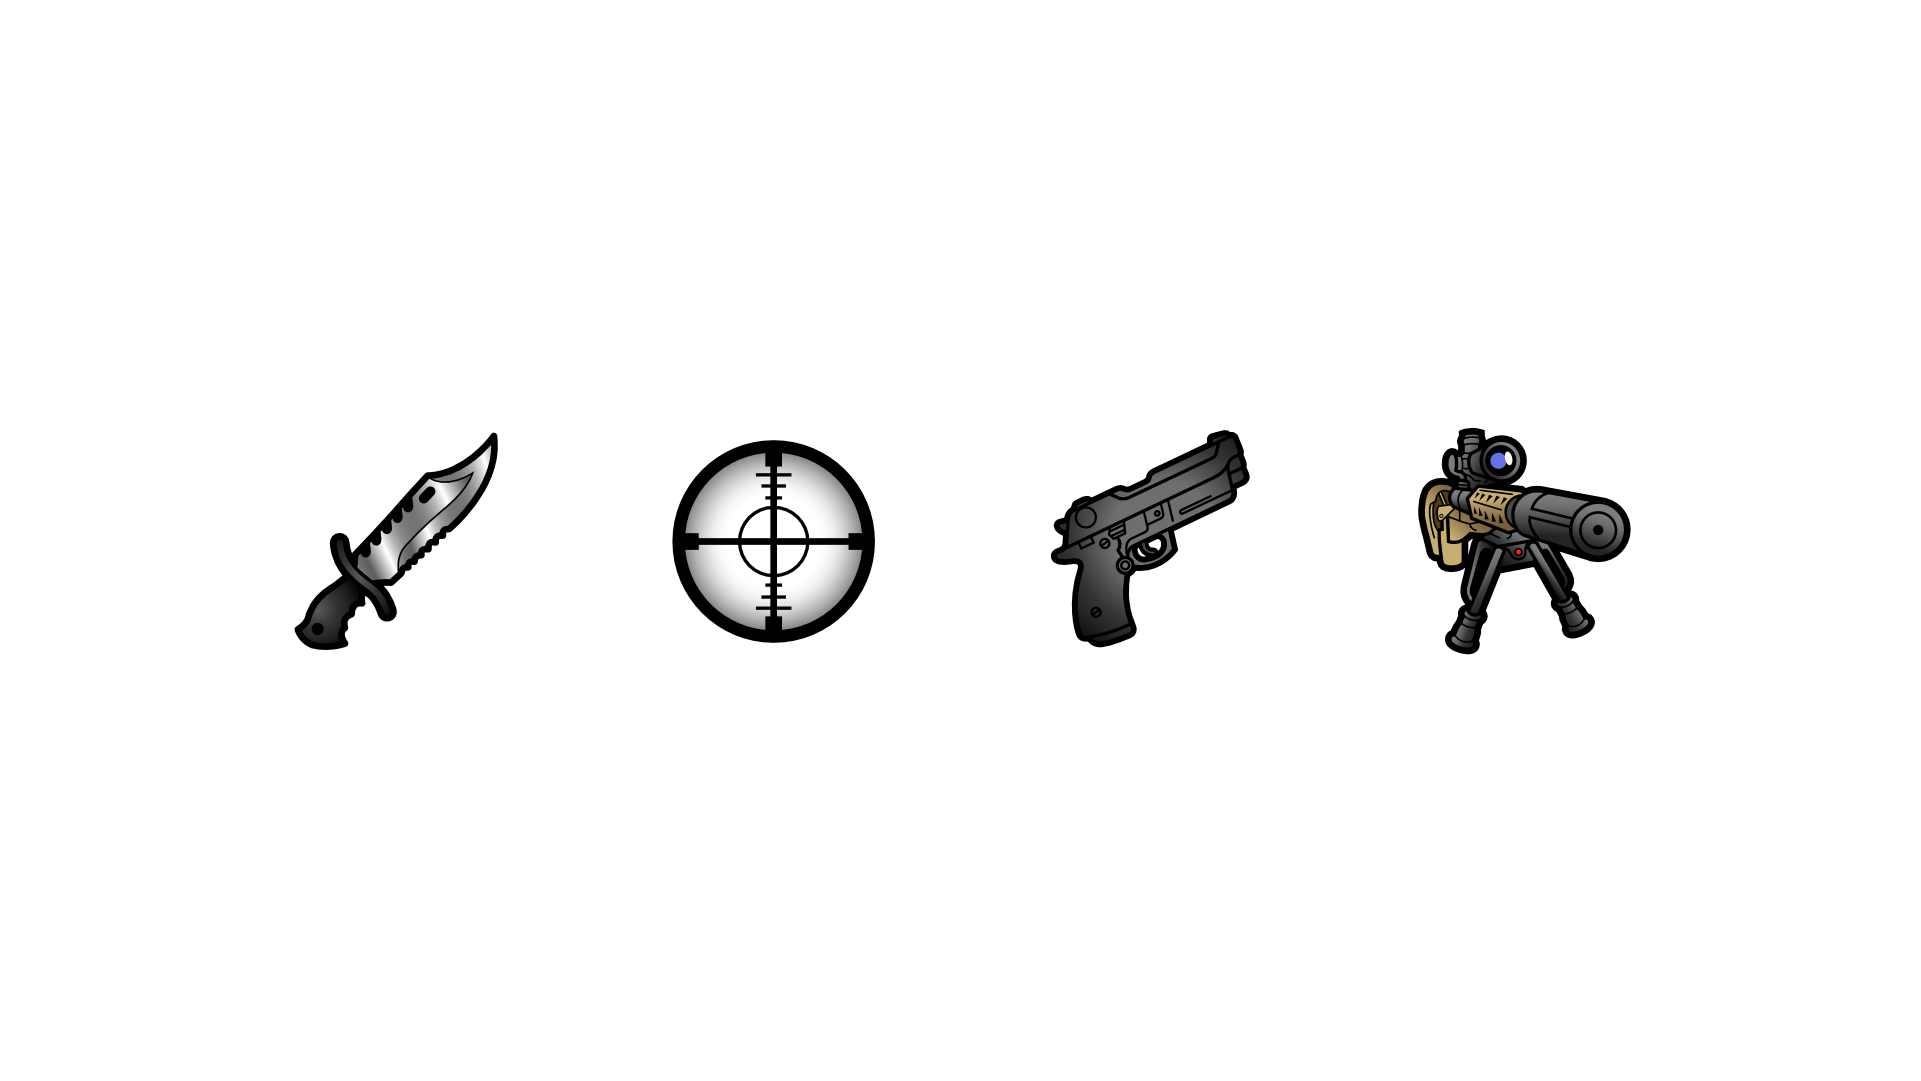 Weapon icon sub badges for Twitch